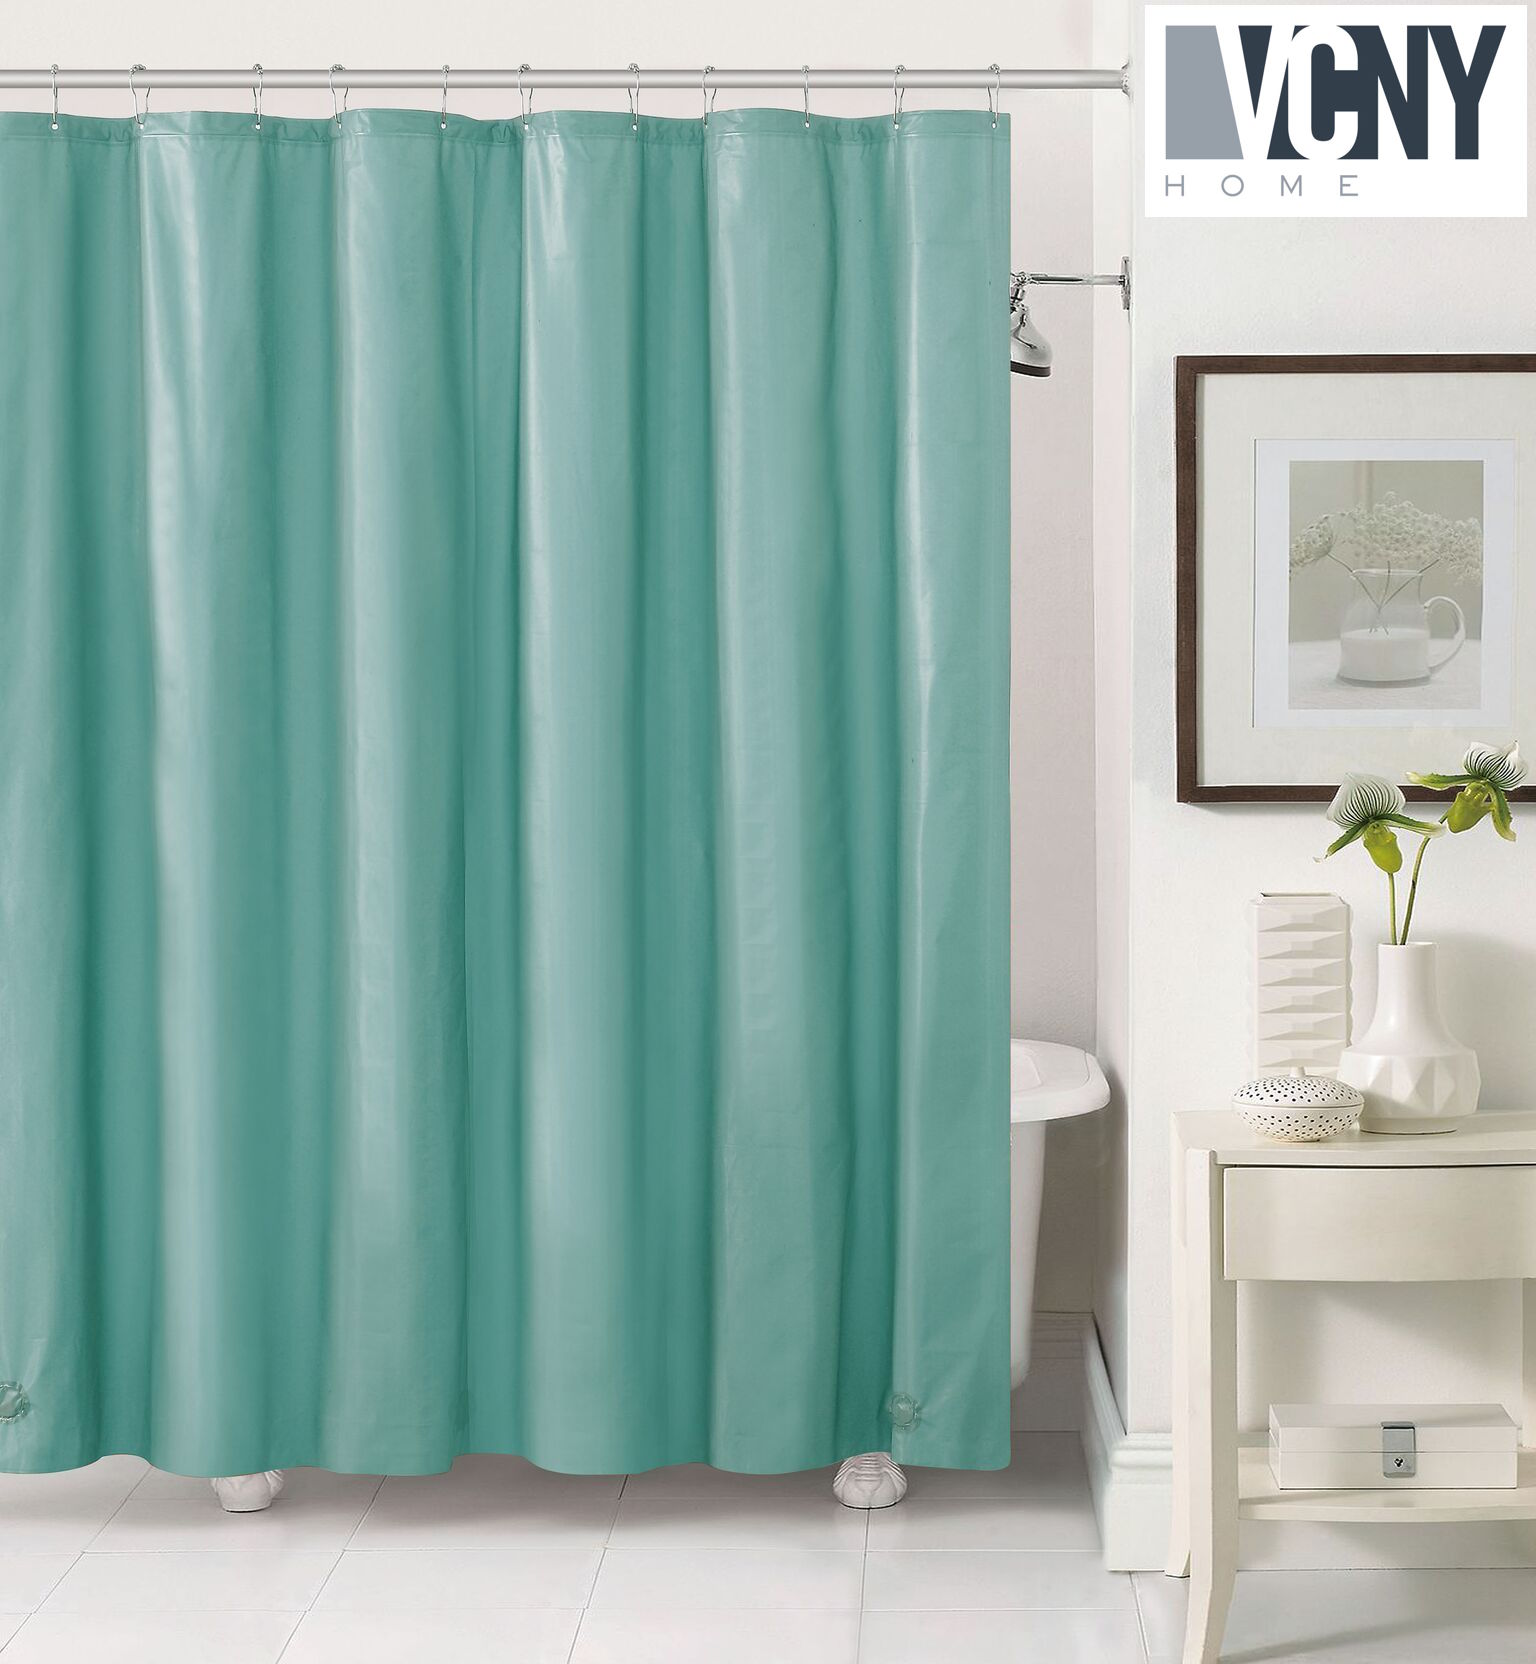 Peva Plastic Shower Curtain Liners With Magnets By Victoria Classics   Aqua